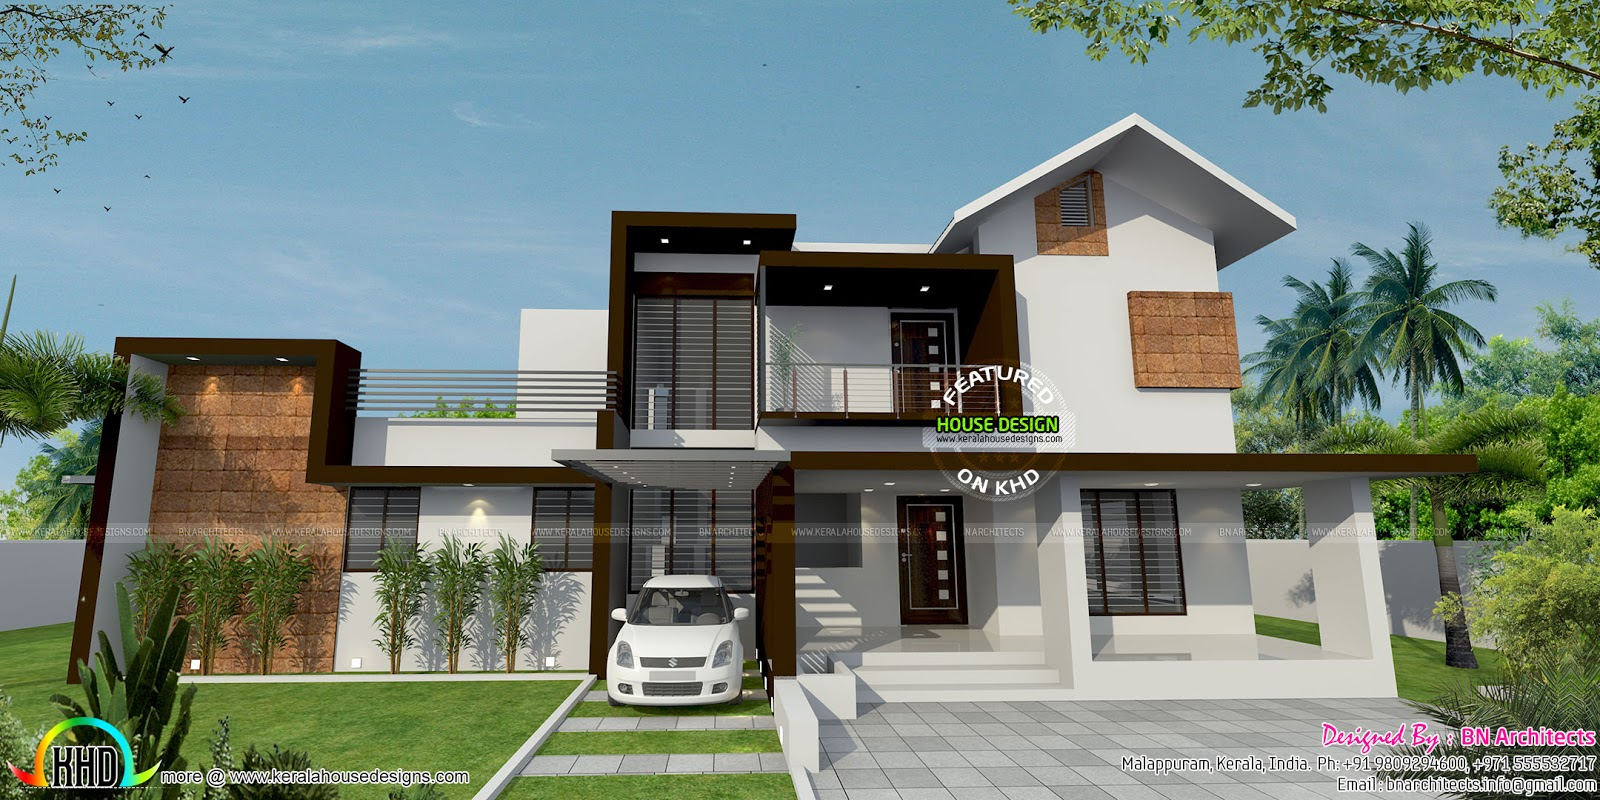 January 2016 kerala home design and floor plans Master bedroom size in india